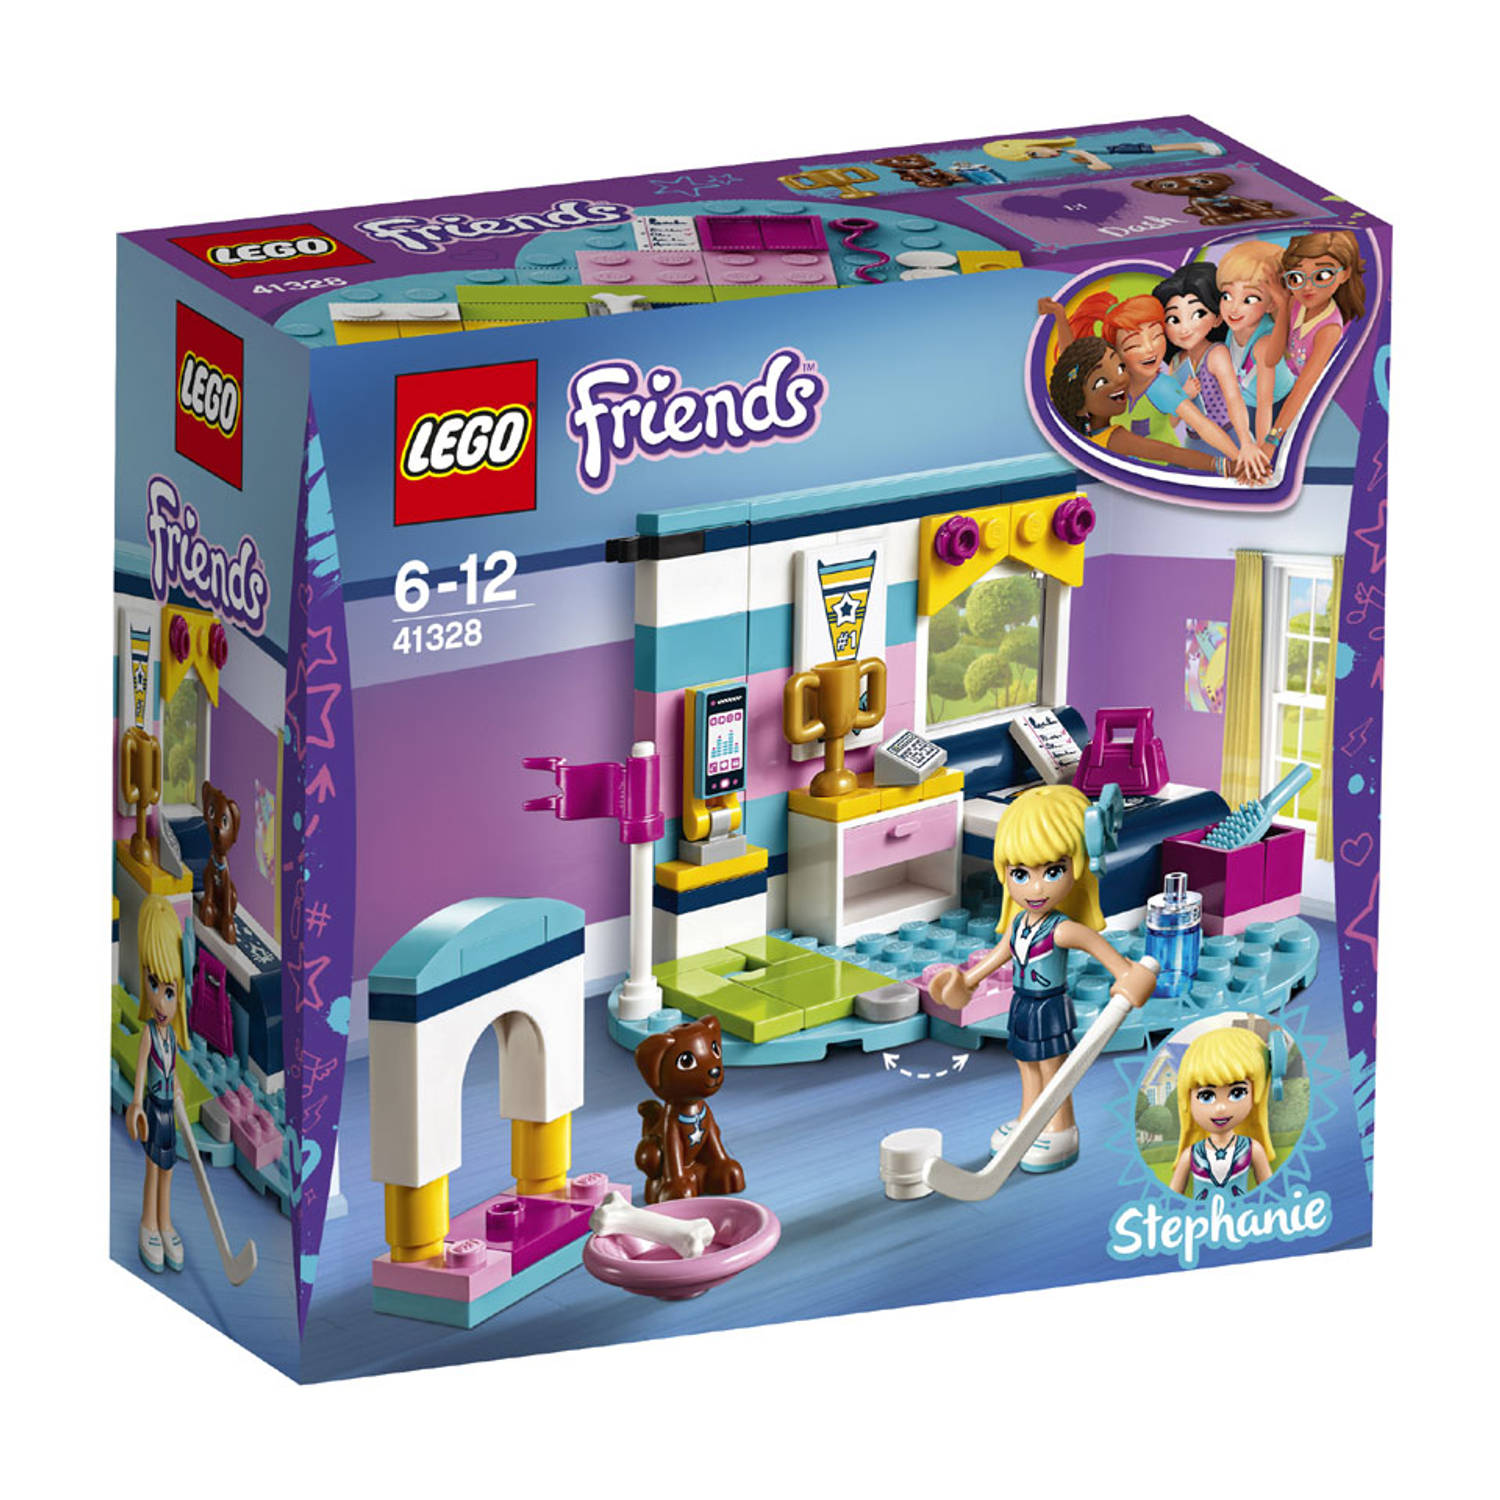 https://www.blokker.nl/p/lego-friends-stephanies-slaapkamer-41328/1647056/images/full/1647056.jpg